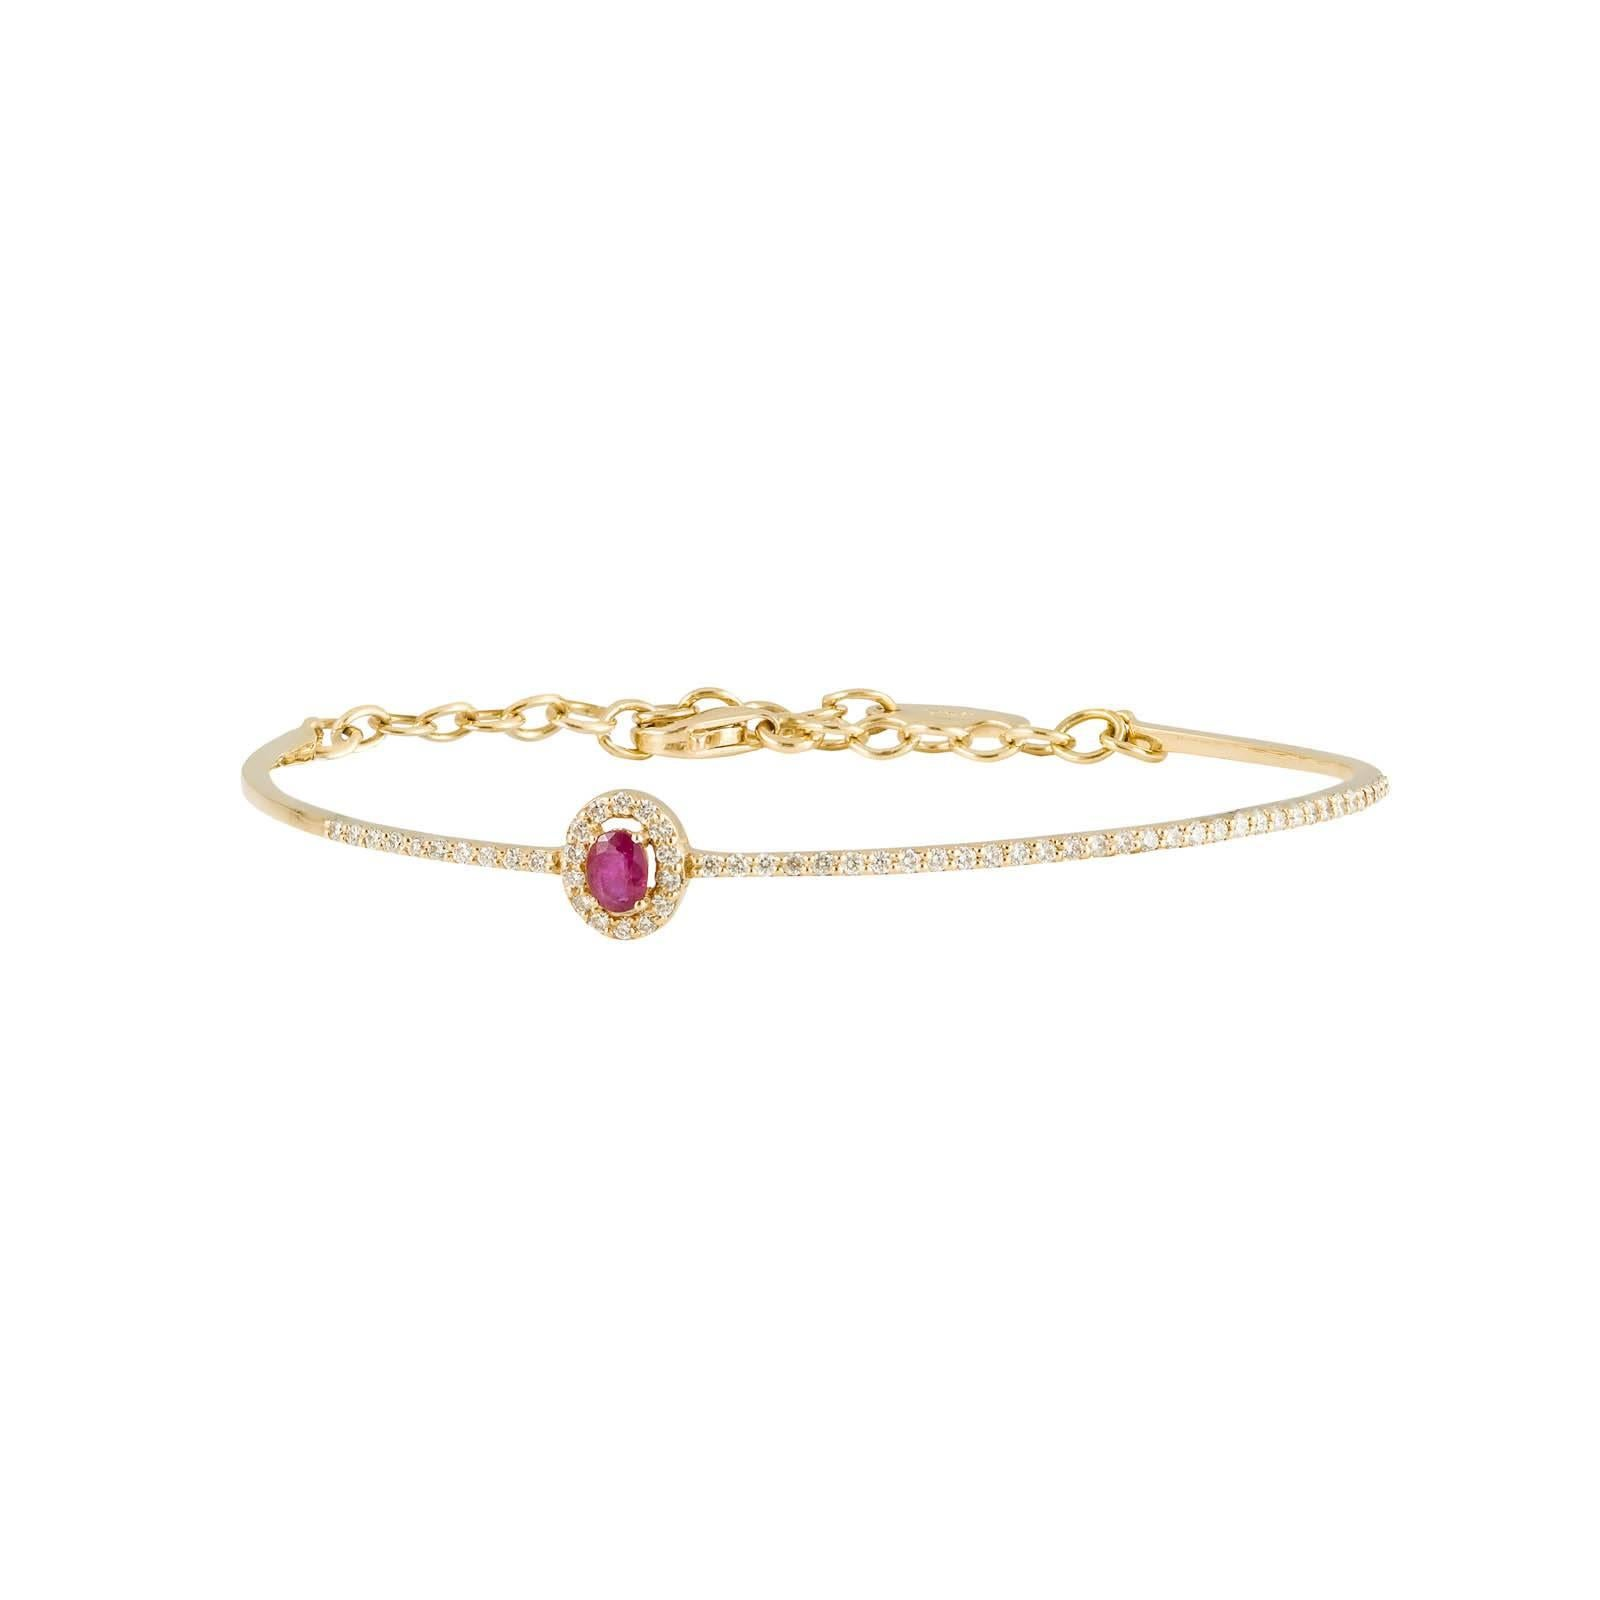 bracelet diamond details ruby and lotfinder elegant an lot by br winston harry s christie hgk